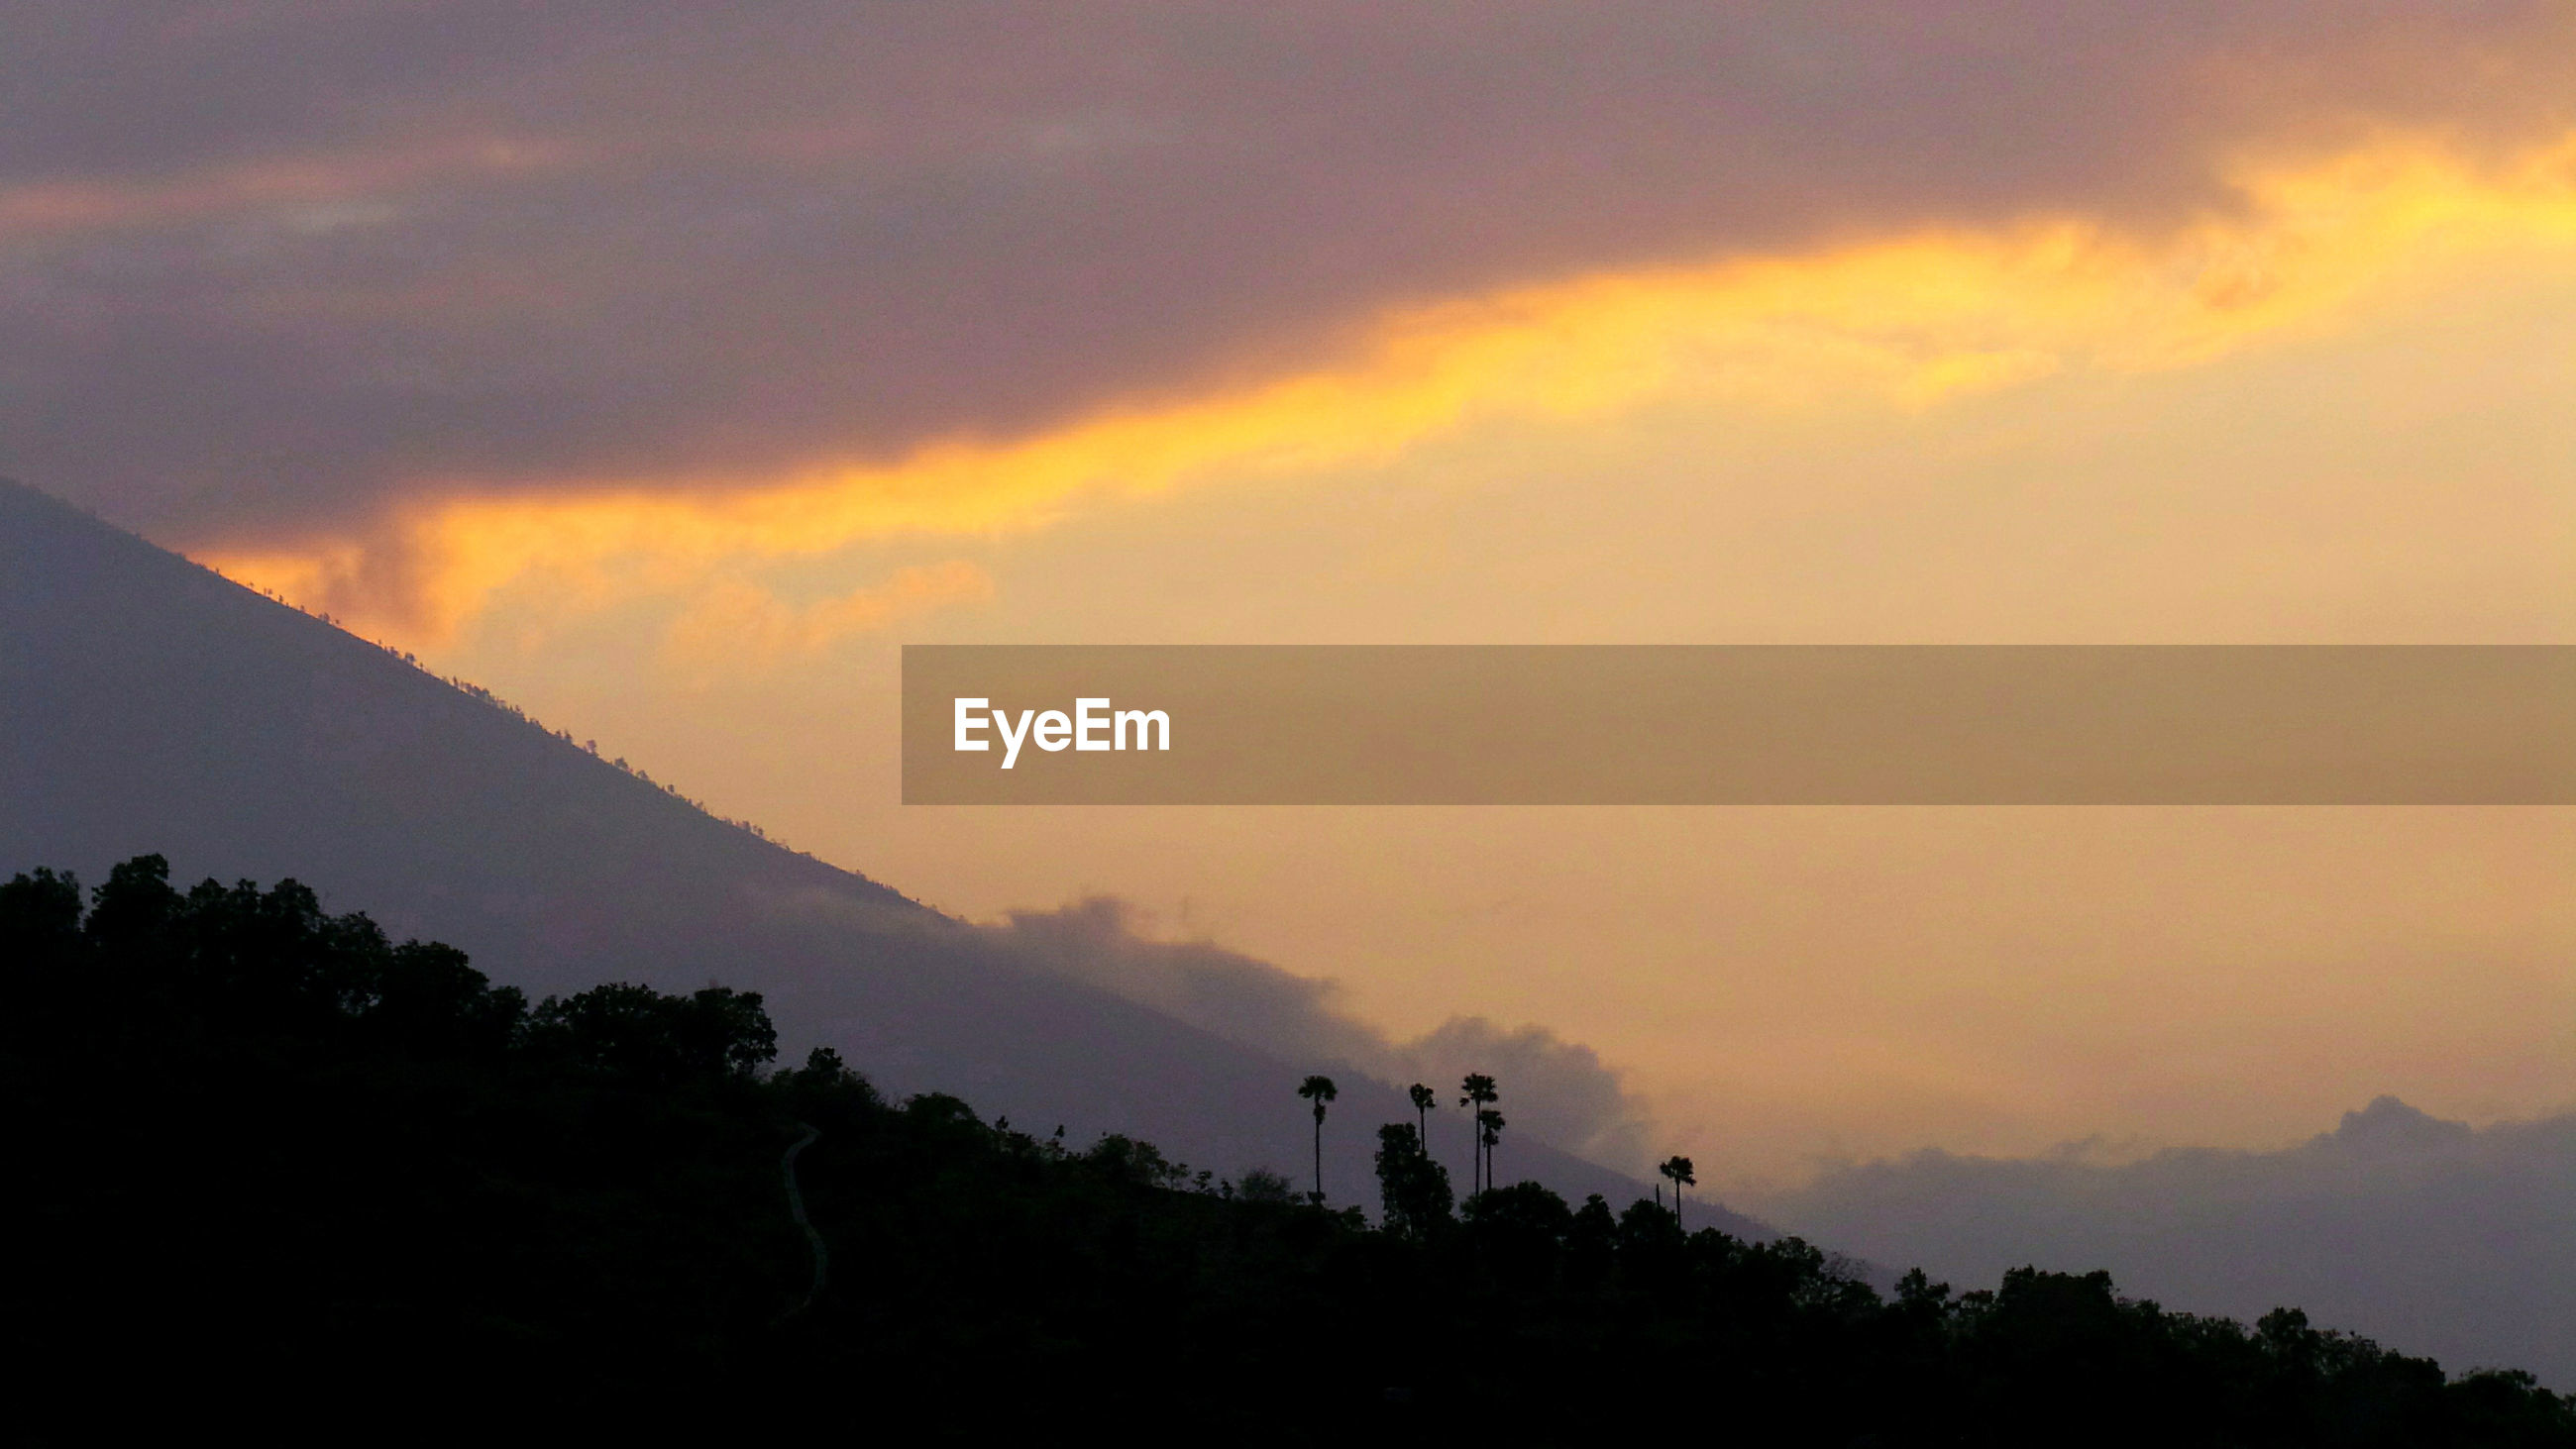 SILHOUETTE TREES AND MOUNTAINS AGAINST SKY DURING SUNSET